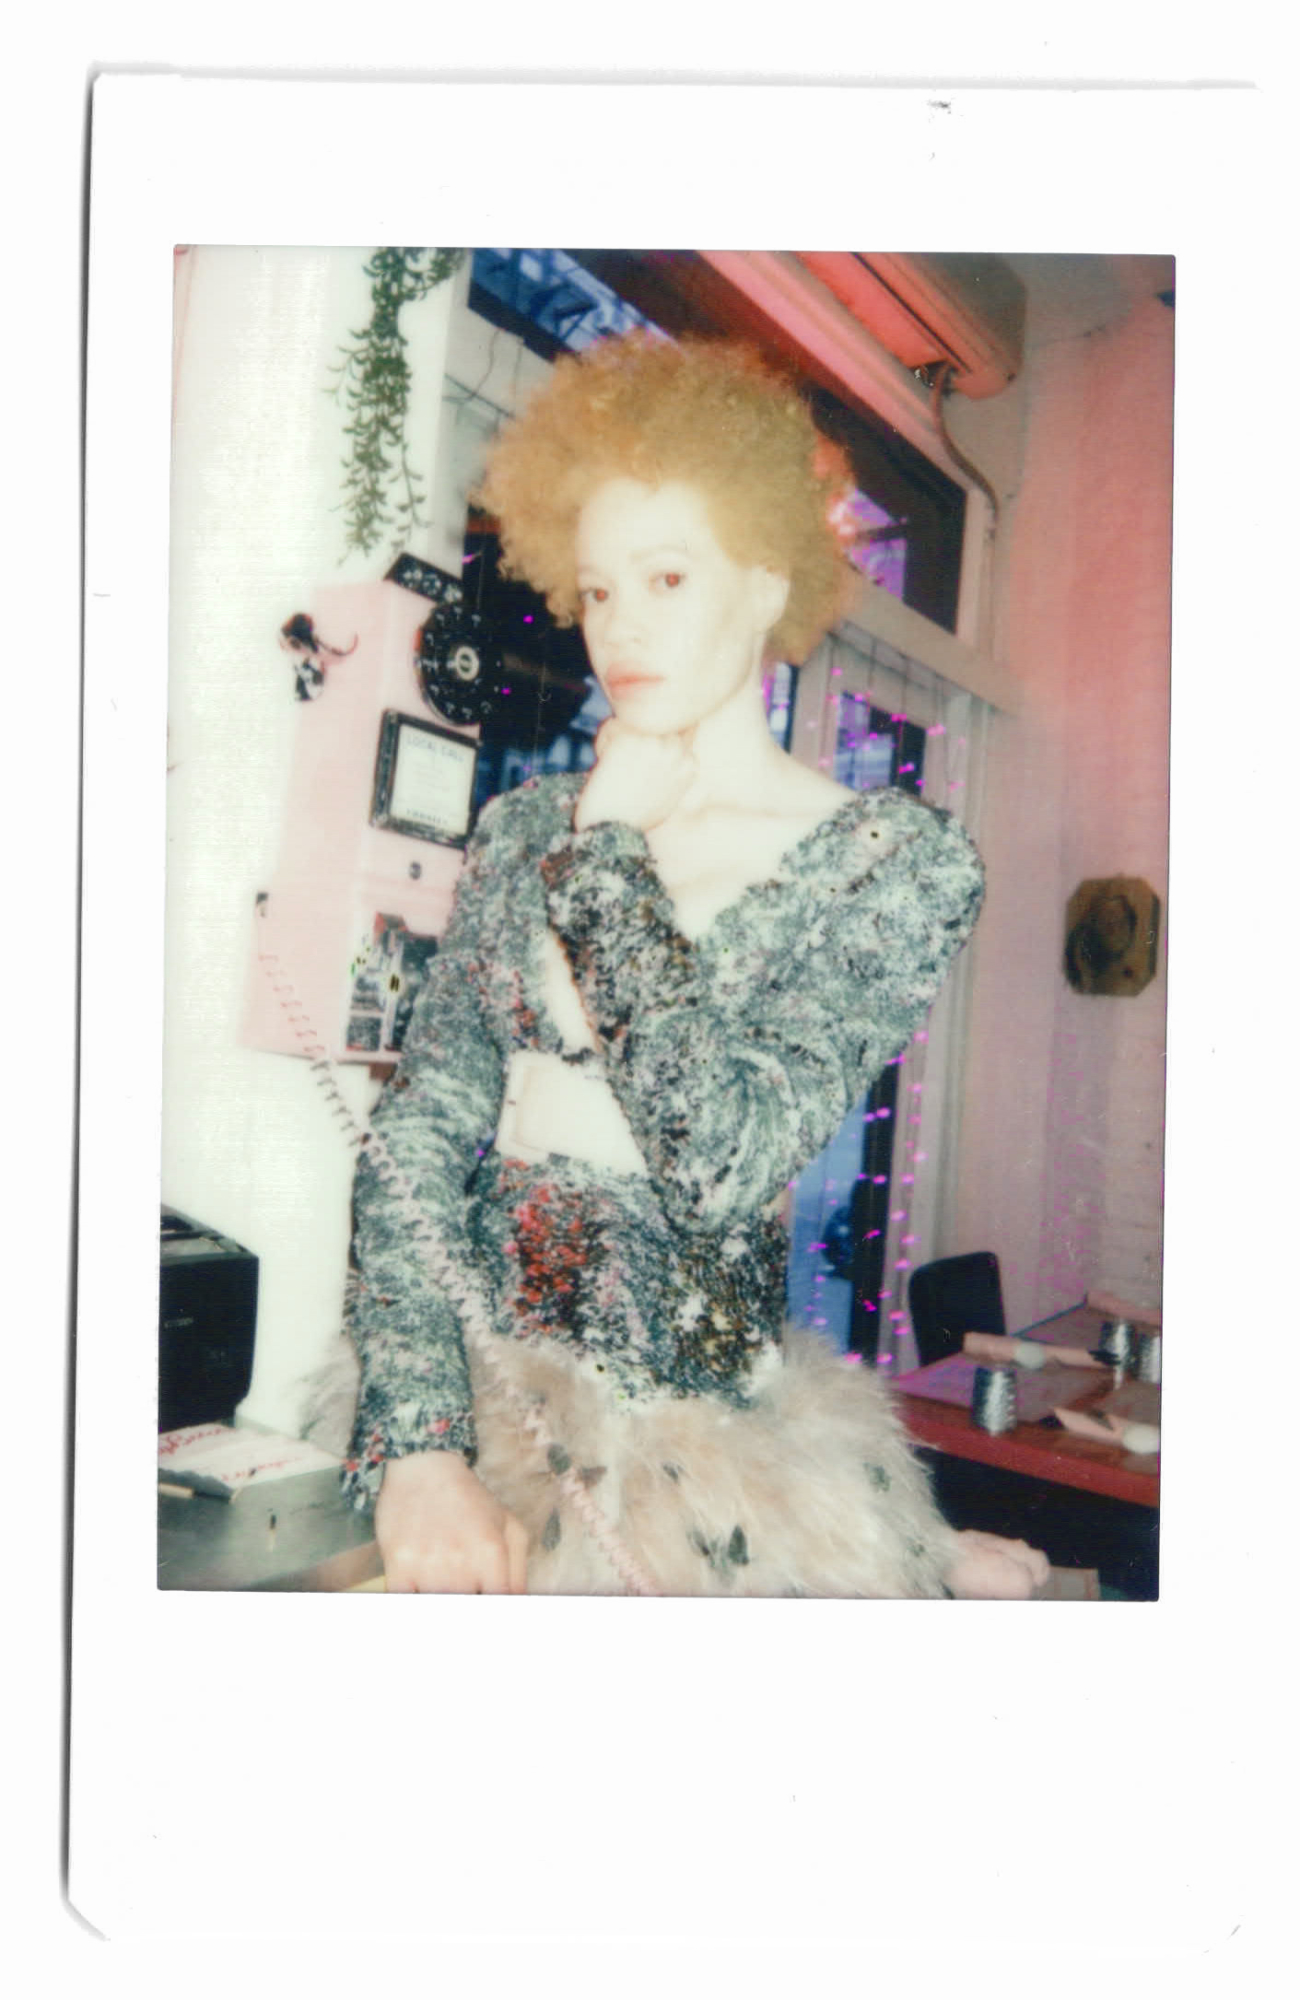 Margaret-Zhang-Chanel-Couture-Film-Shine-By-Three-Diandra-Forrest-polaroid